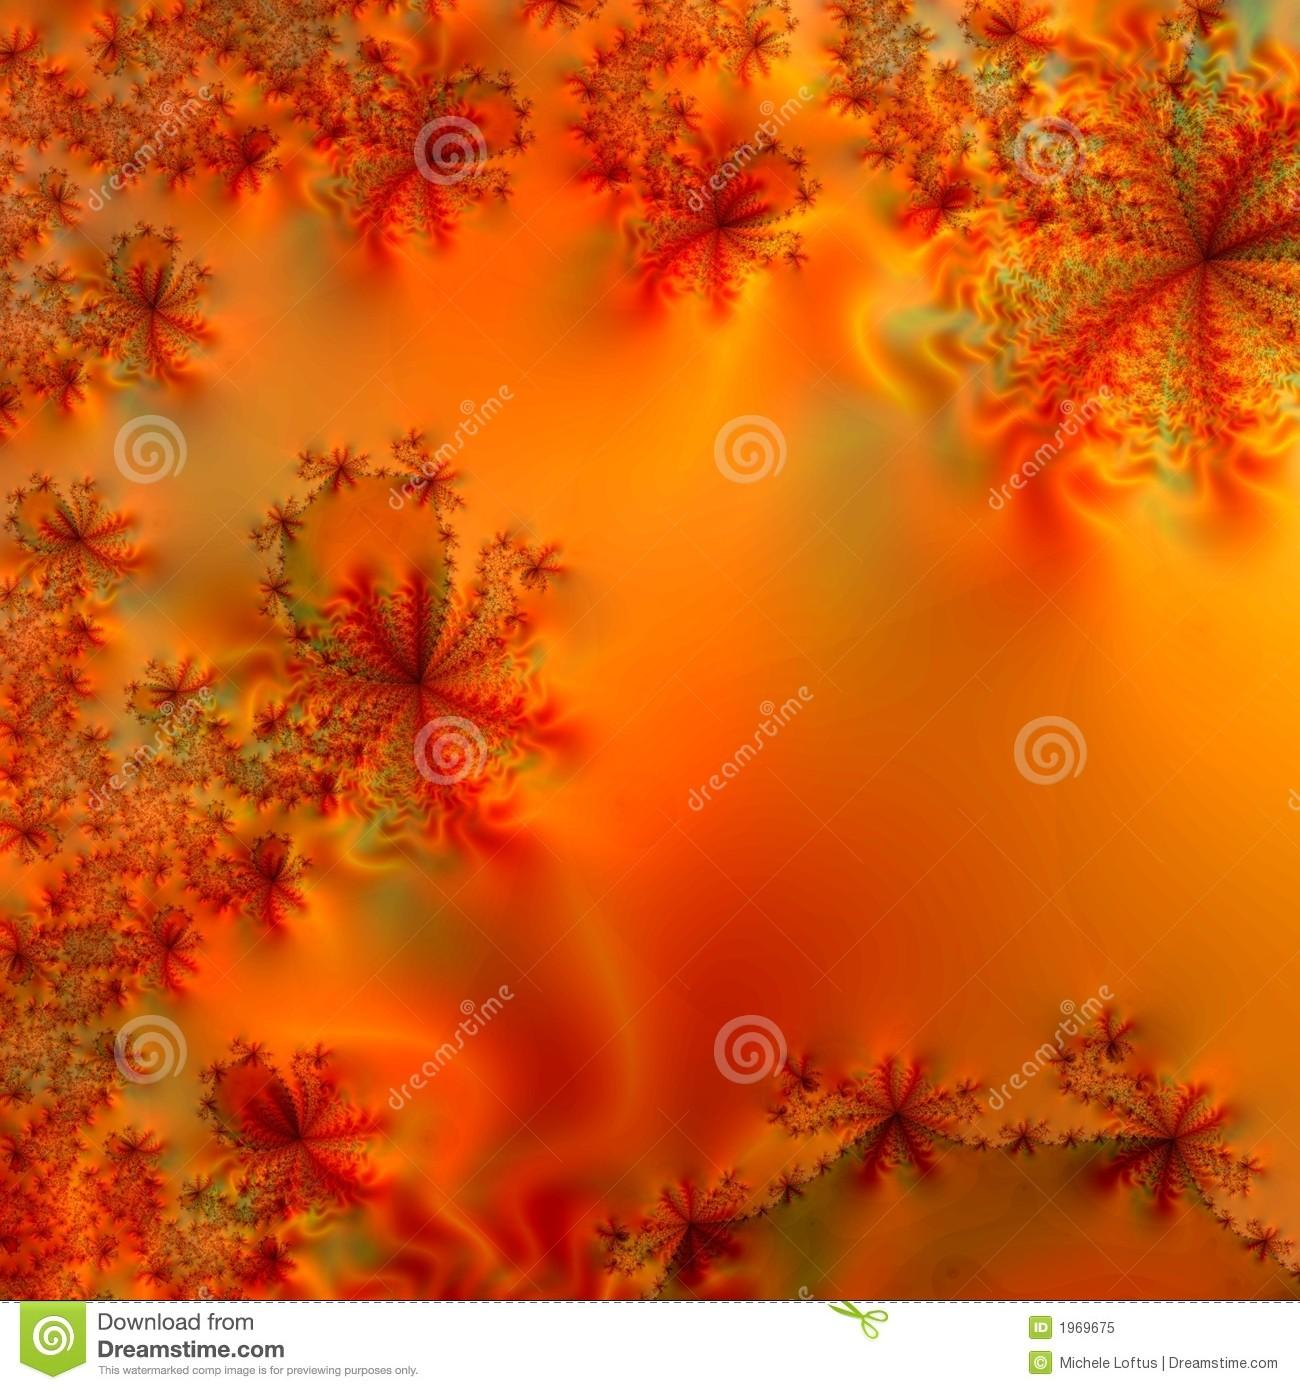 Blazing Autumn Colors Abstract Design Template